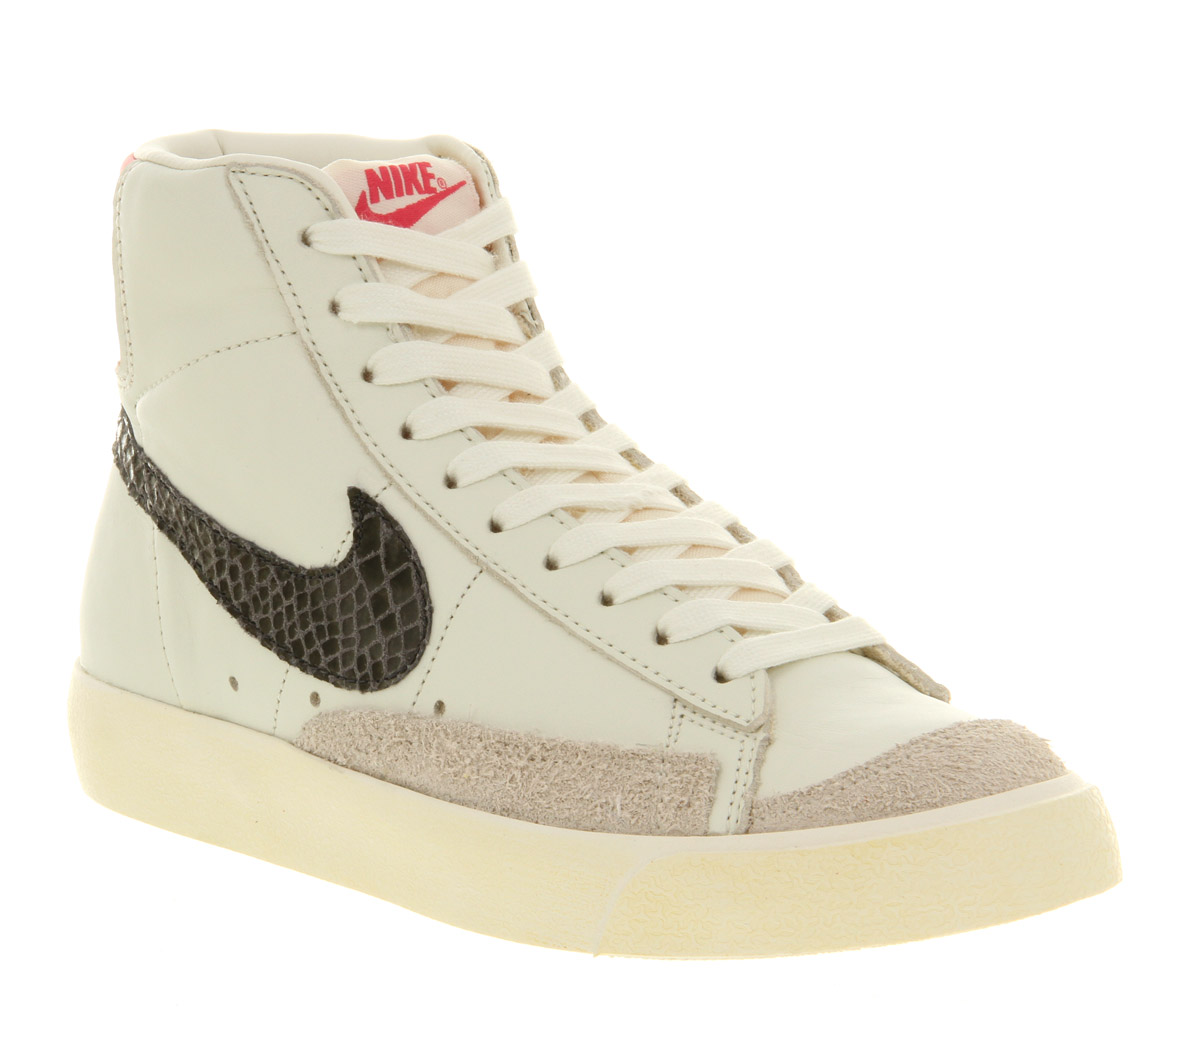 buy popular 428d6 f1917 Nike Blazer Mid 77 Sail Pink Snake in Natural - Lyst